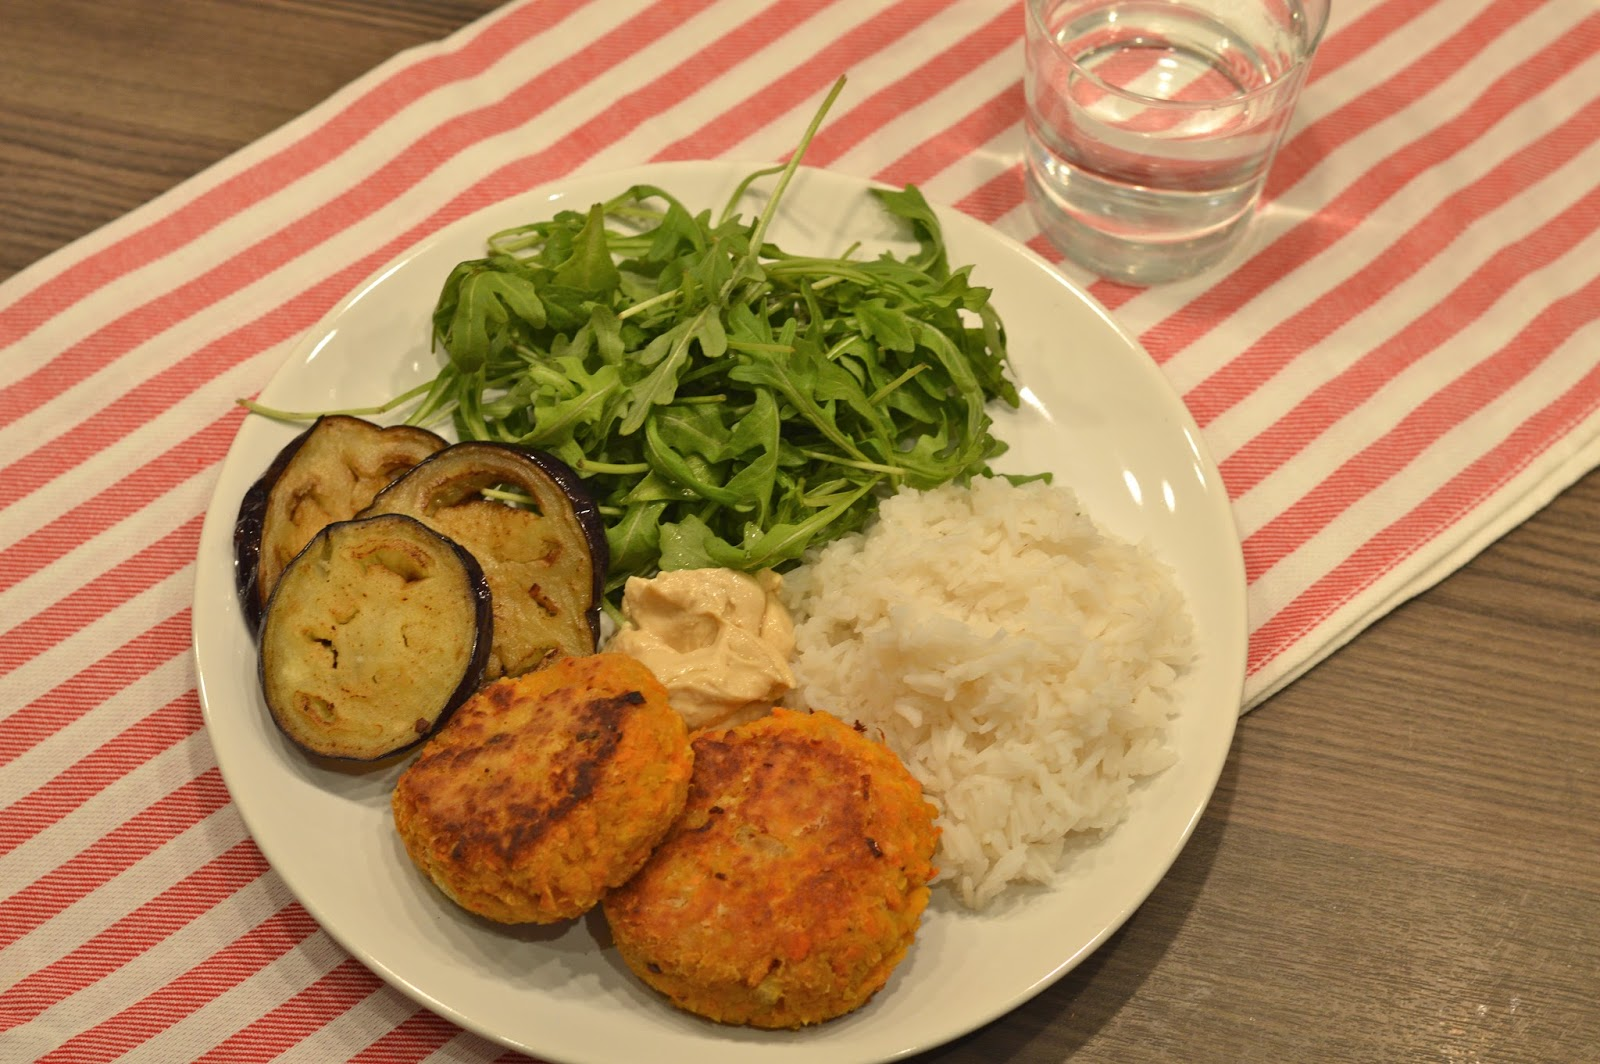 Sweet potato and chickpea cakes burgers patties vegetarian recipe serve with salad, humous, rice and fried aubergine